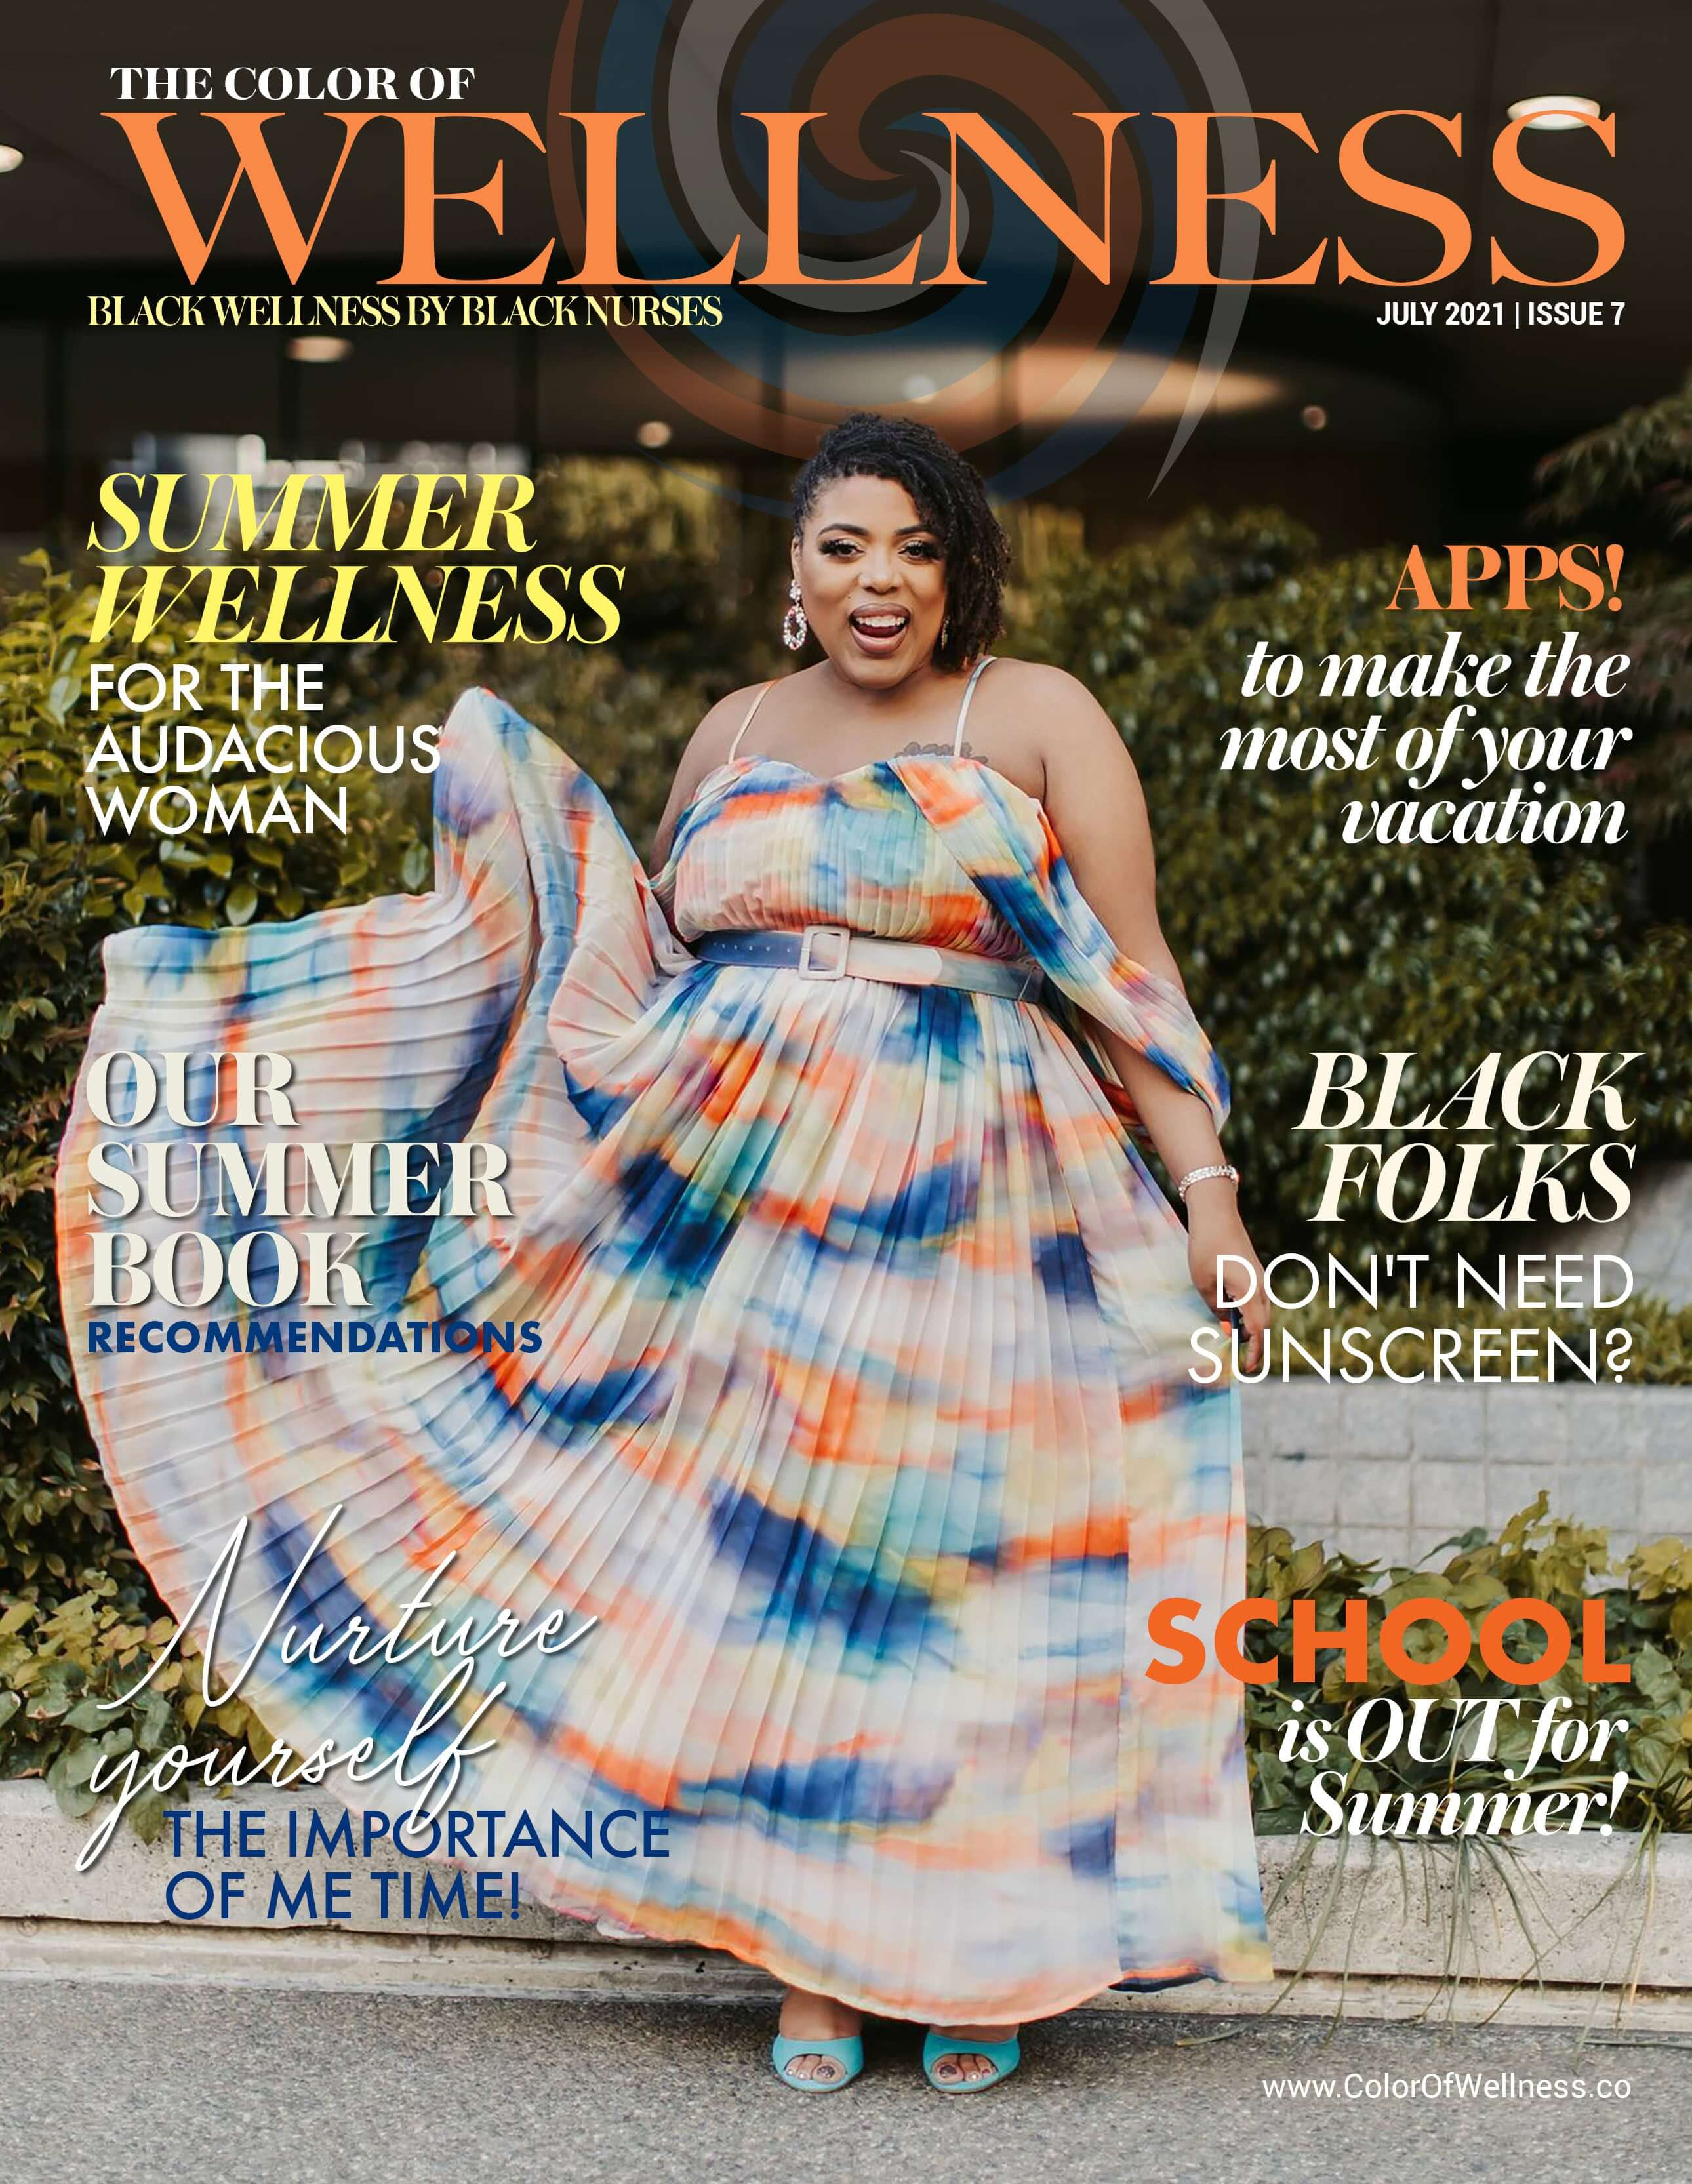 Cover of the Color of Wellness Magazine July 2021 issue 7.